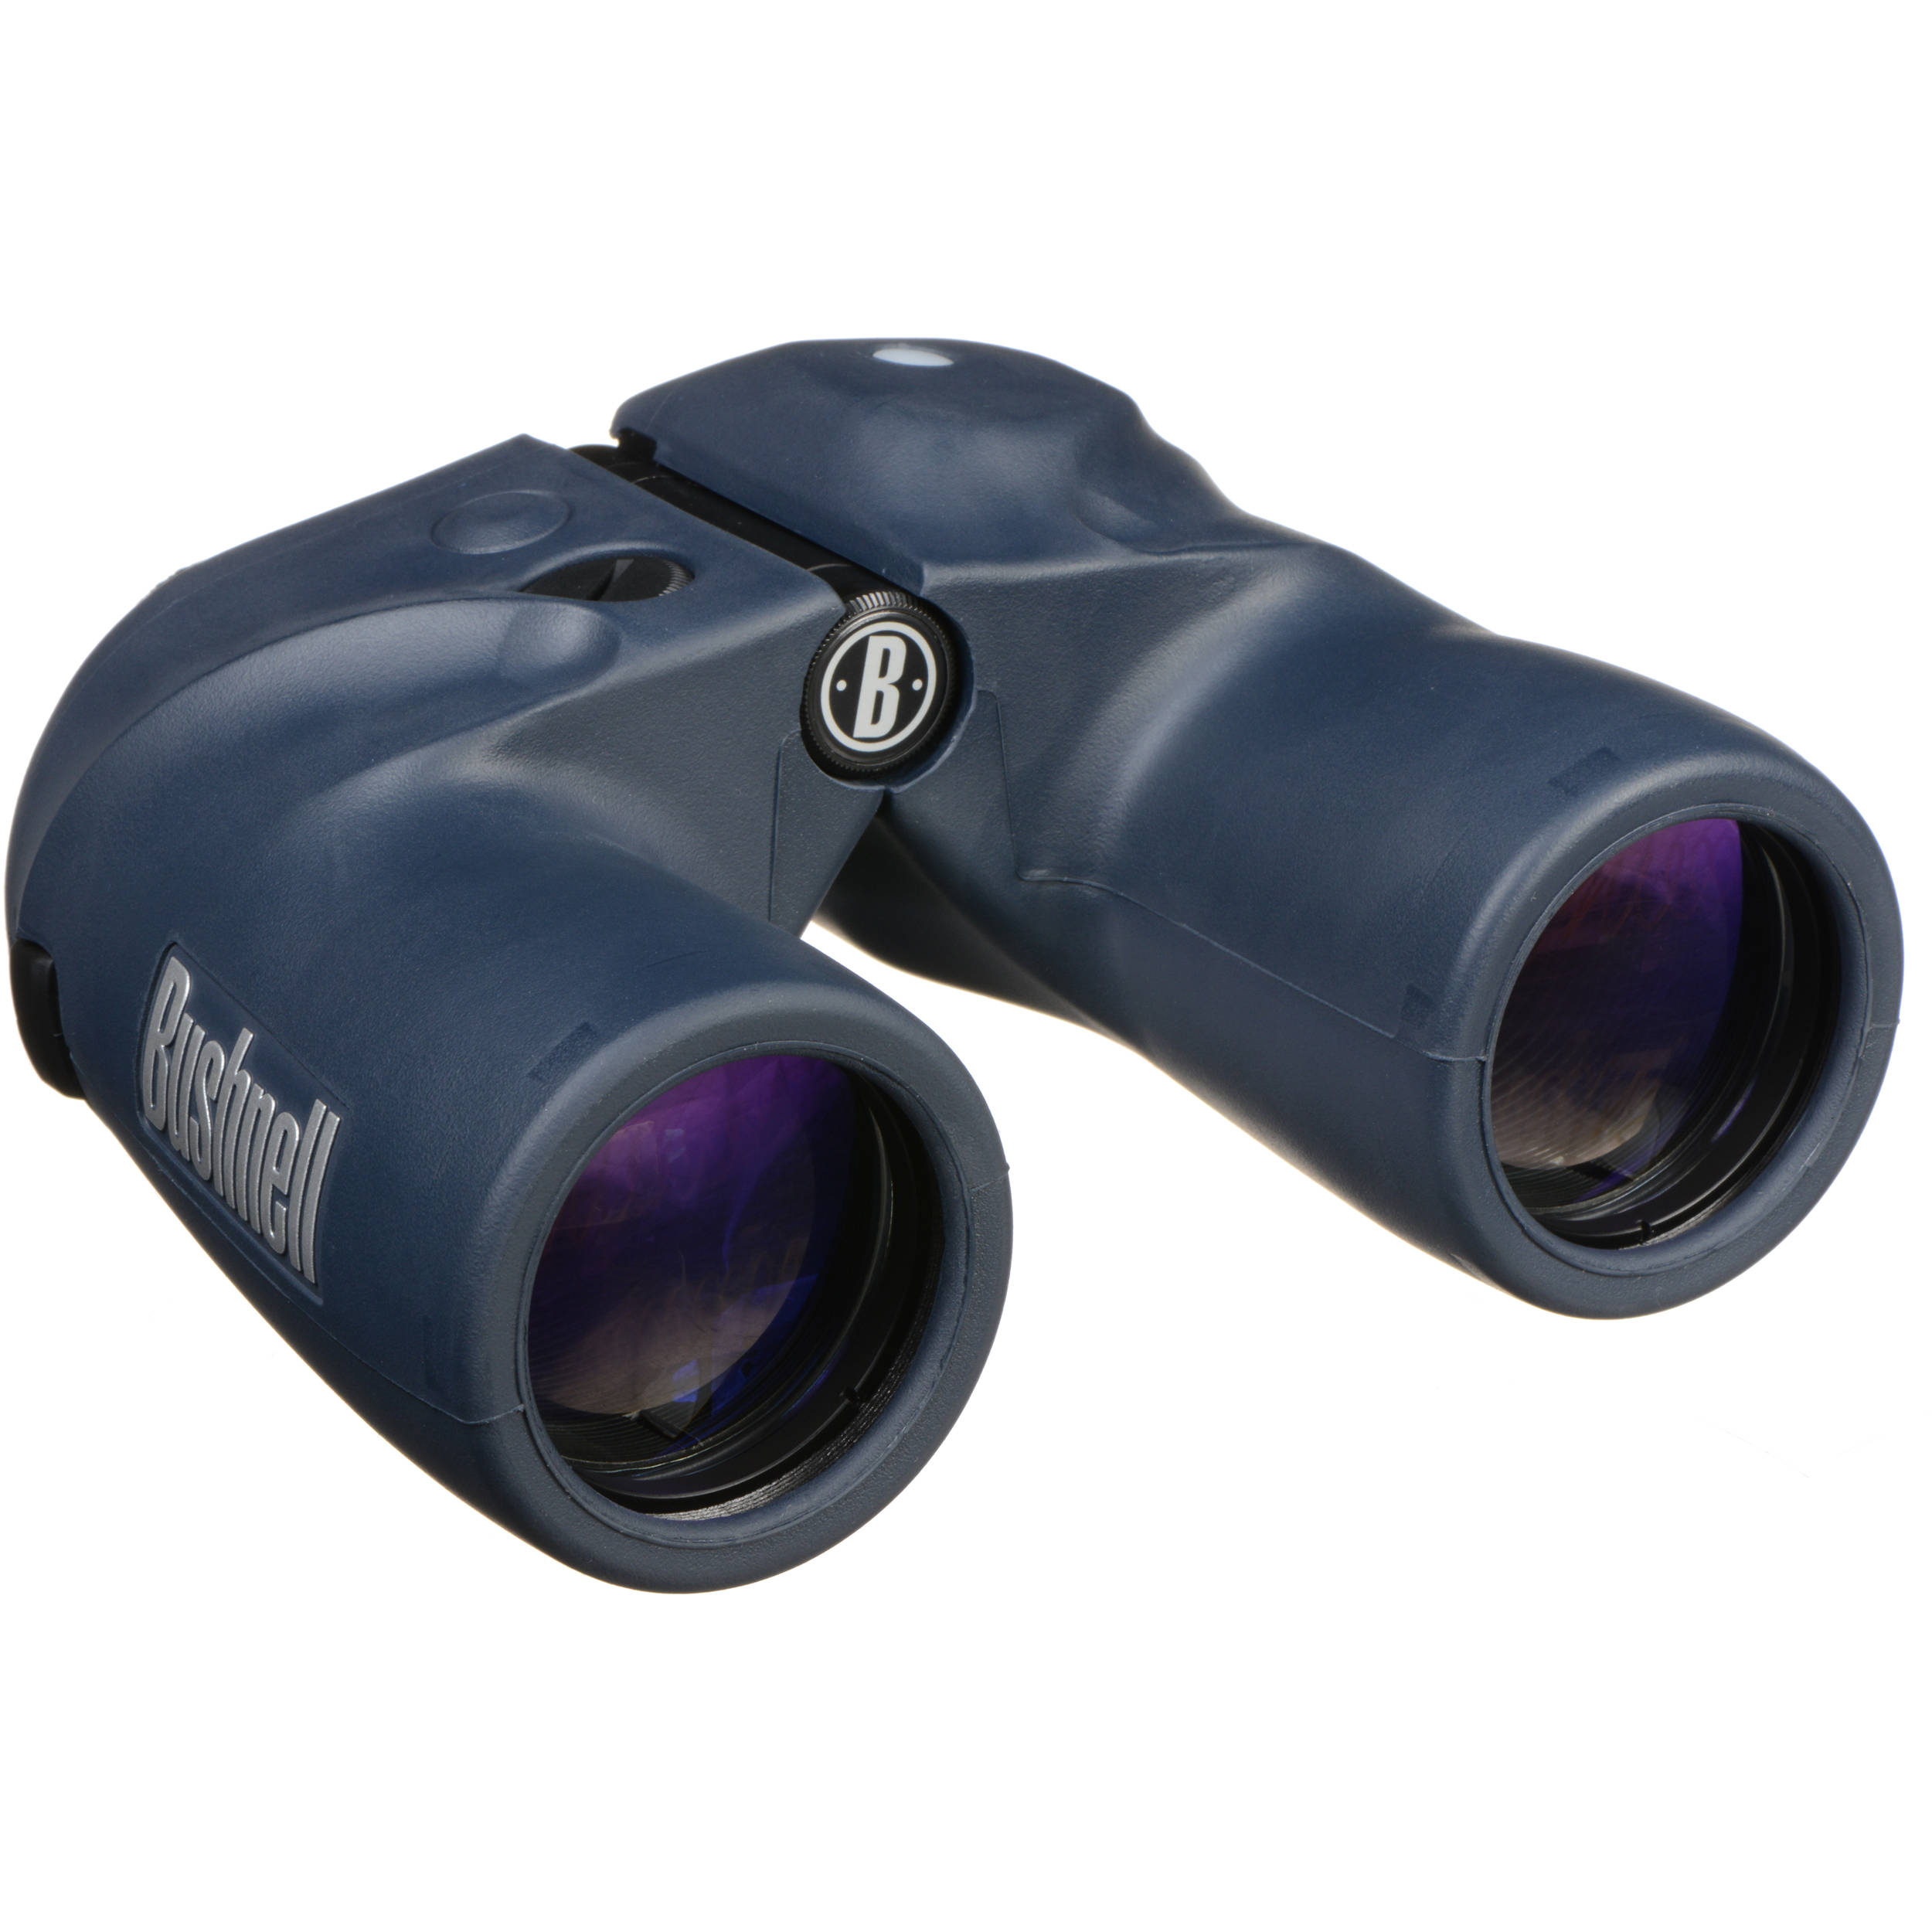 Bushnell 7x50 Marine Binocular with Compass (Blue)